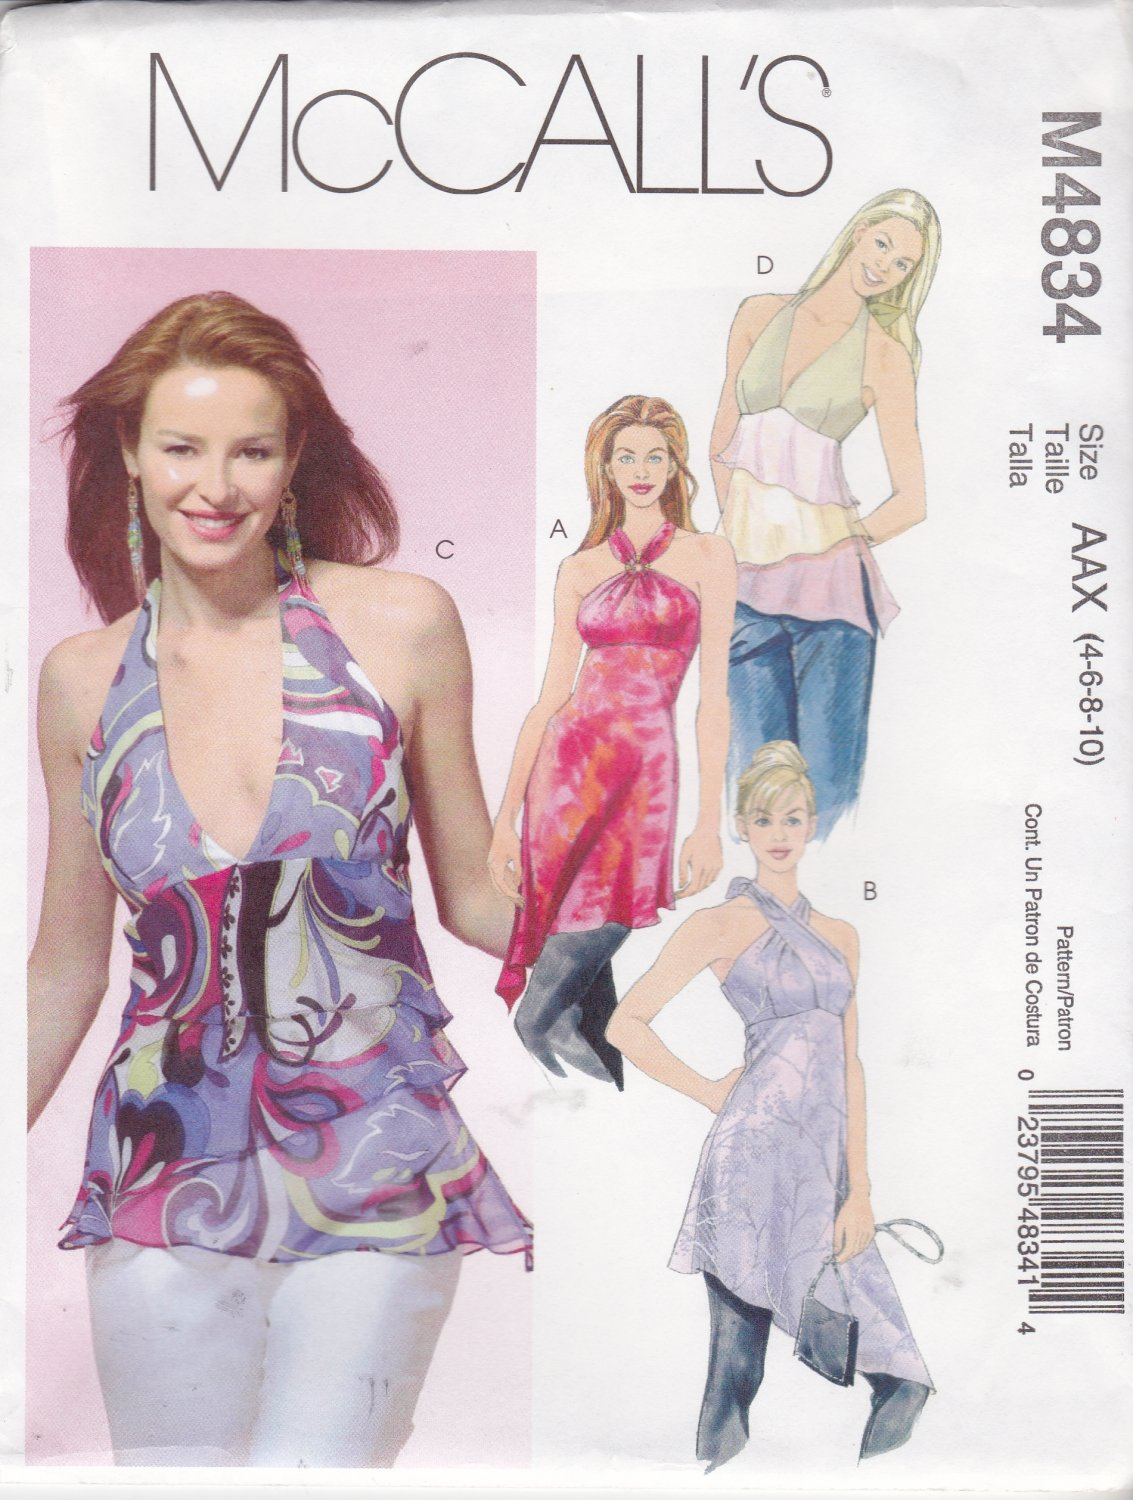 McCall's Sewing Pattern 4834 Misses Size 4-10 Halter Raised Waist Tops Tunics